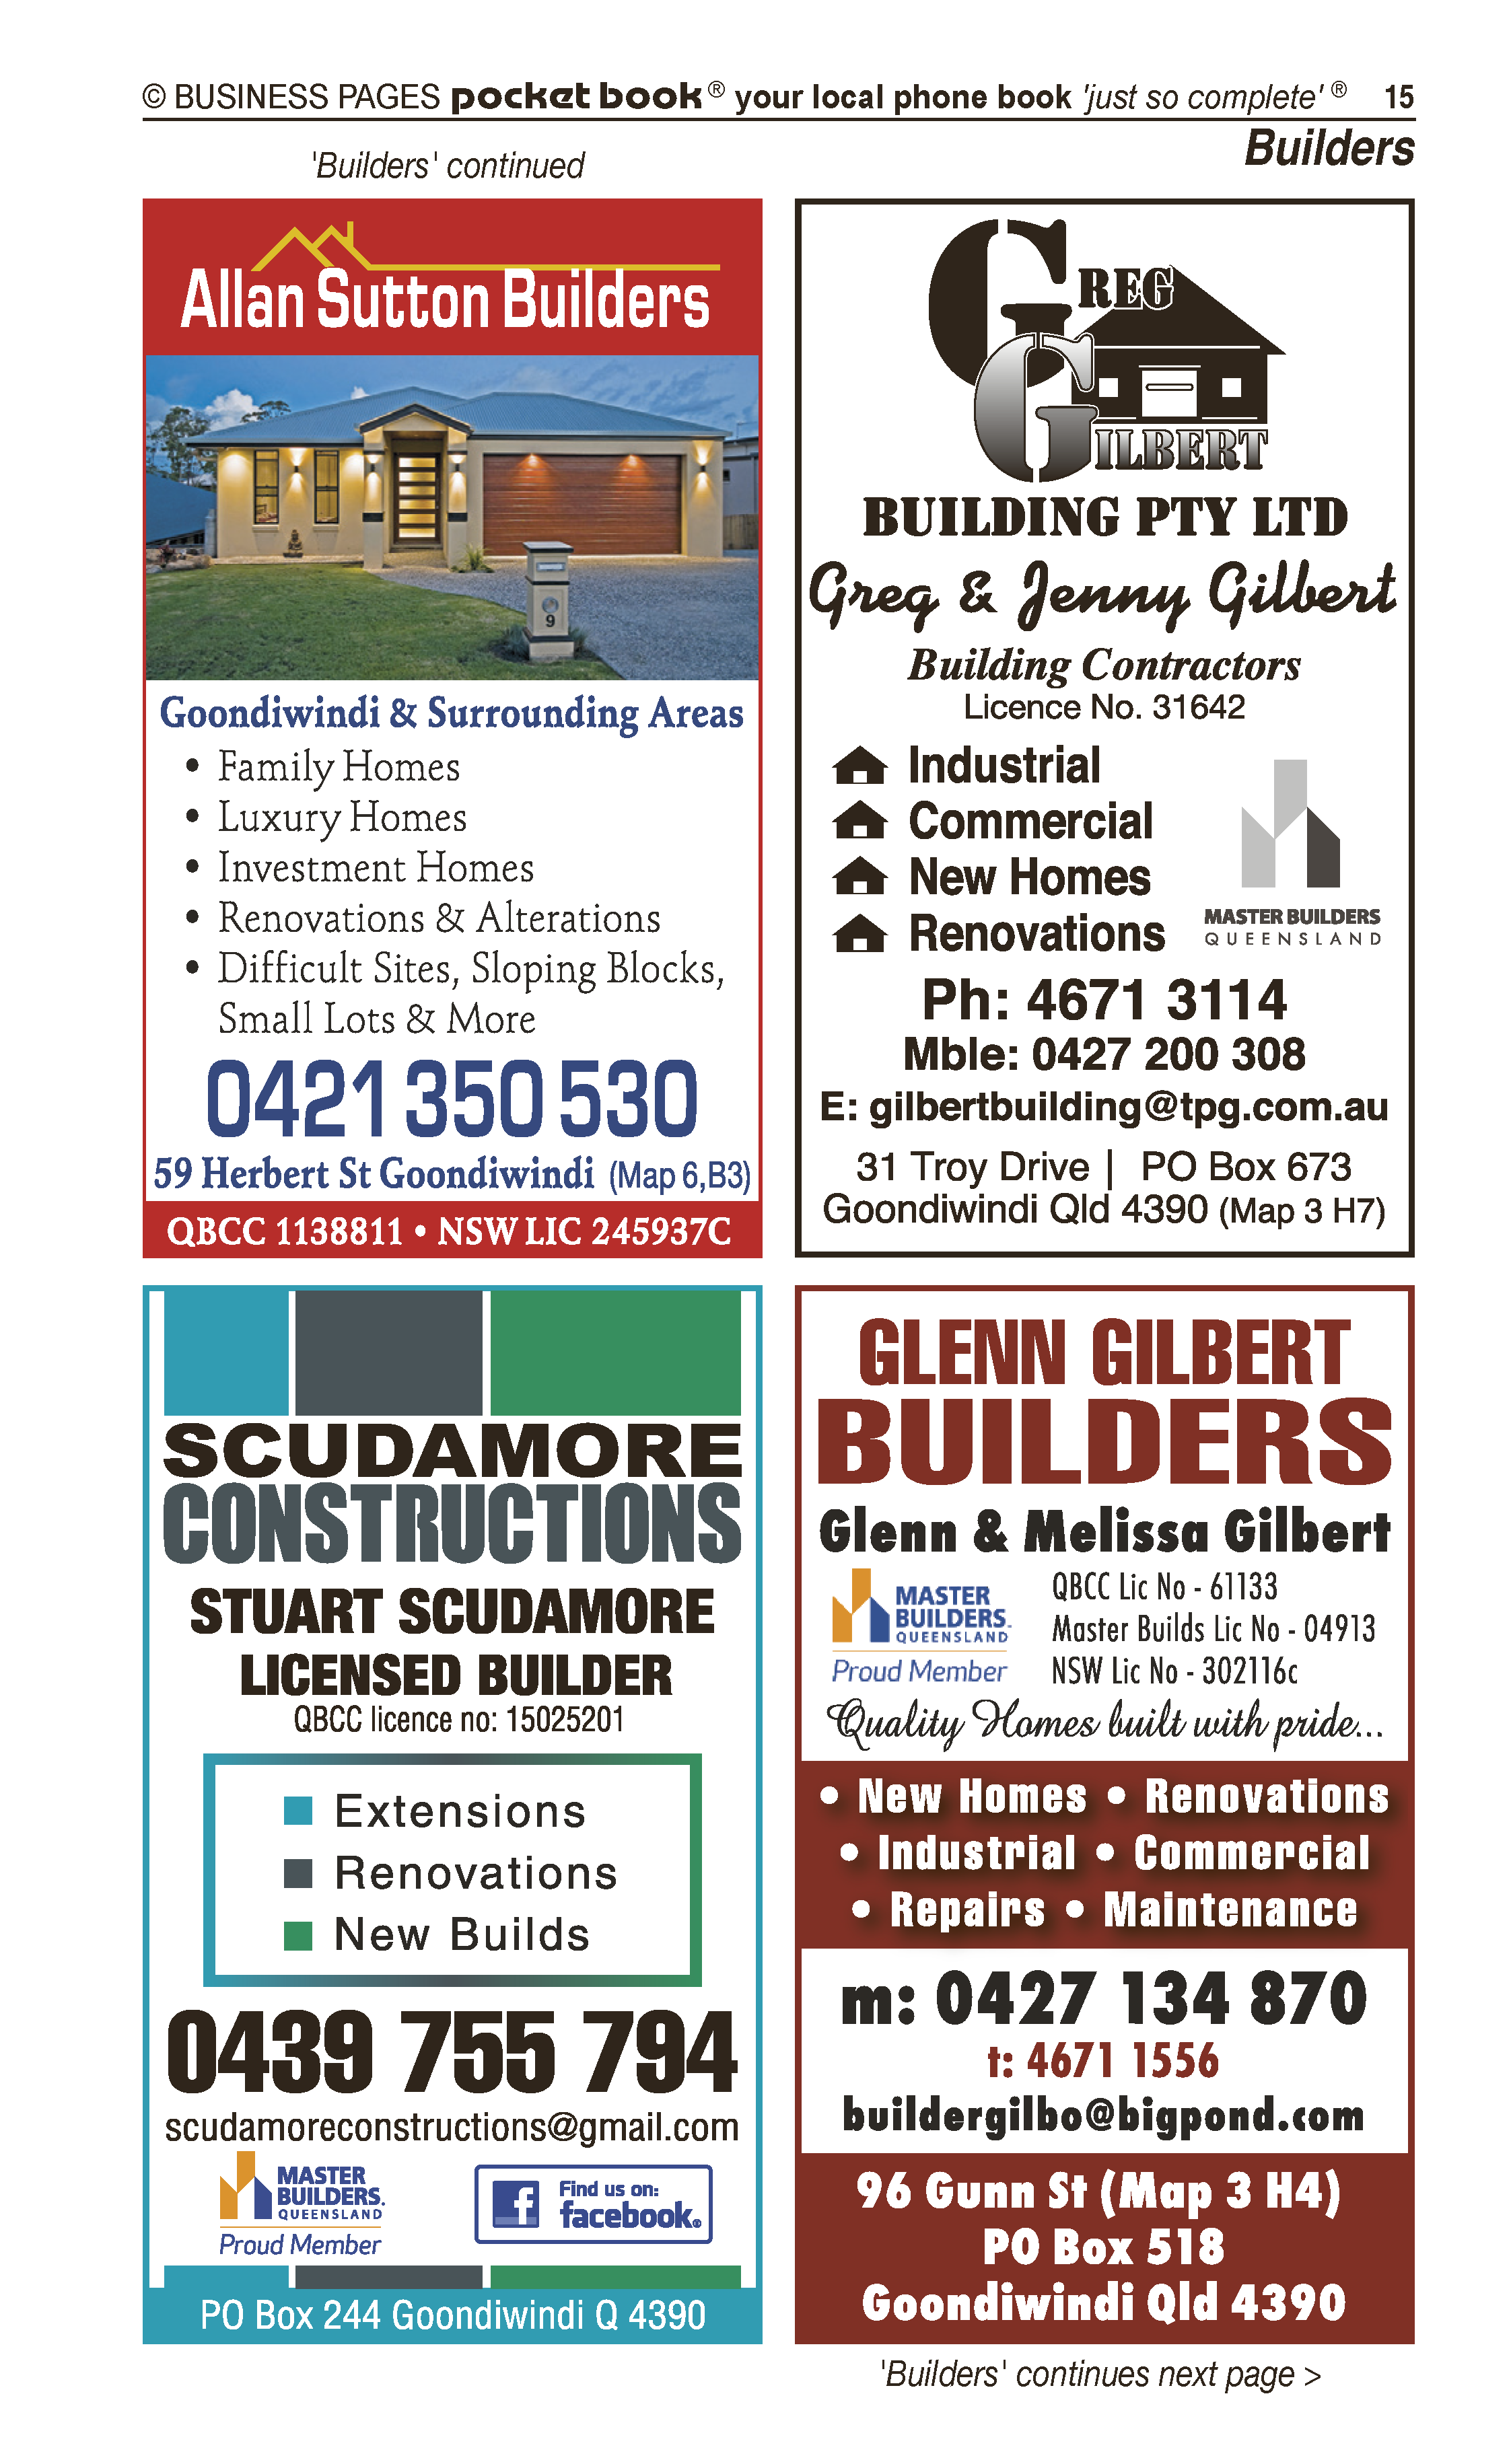 Thwaite Building Solutions Pty Ltd | Builders & Building Consultants in Goondiwindi | PBezy Pocket Books local directories - page 15